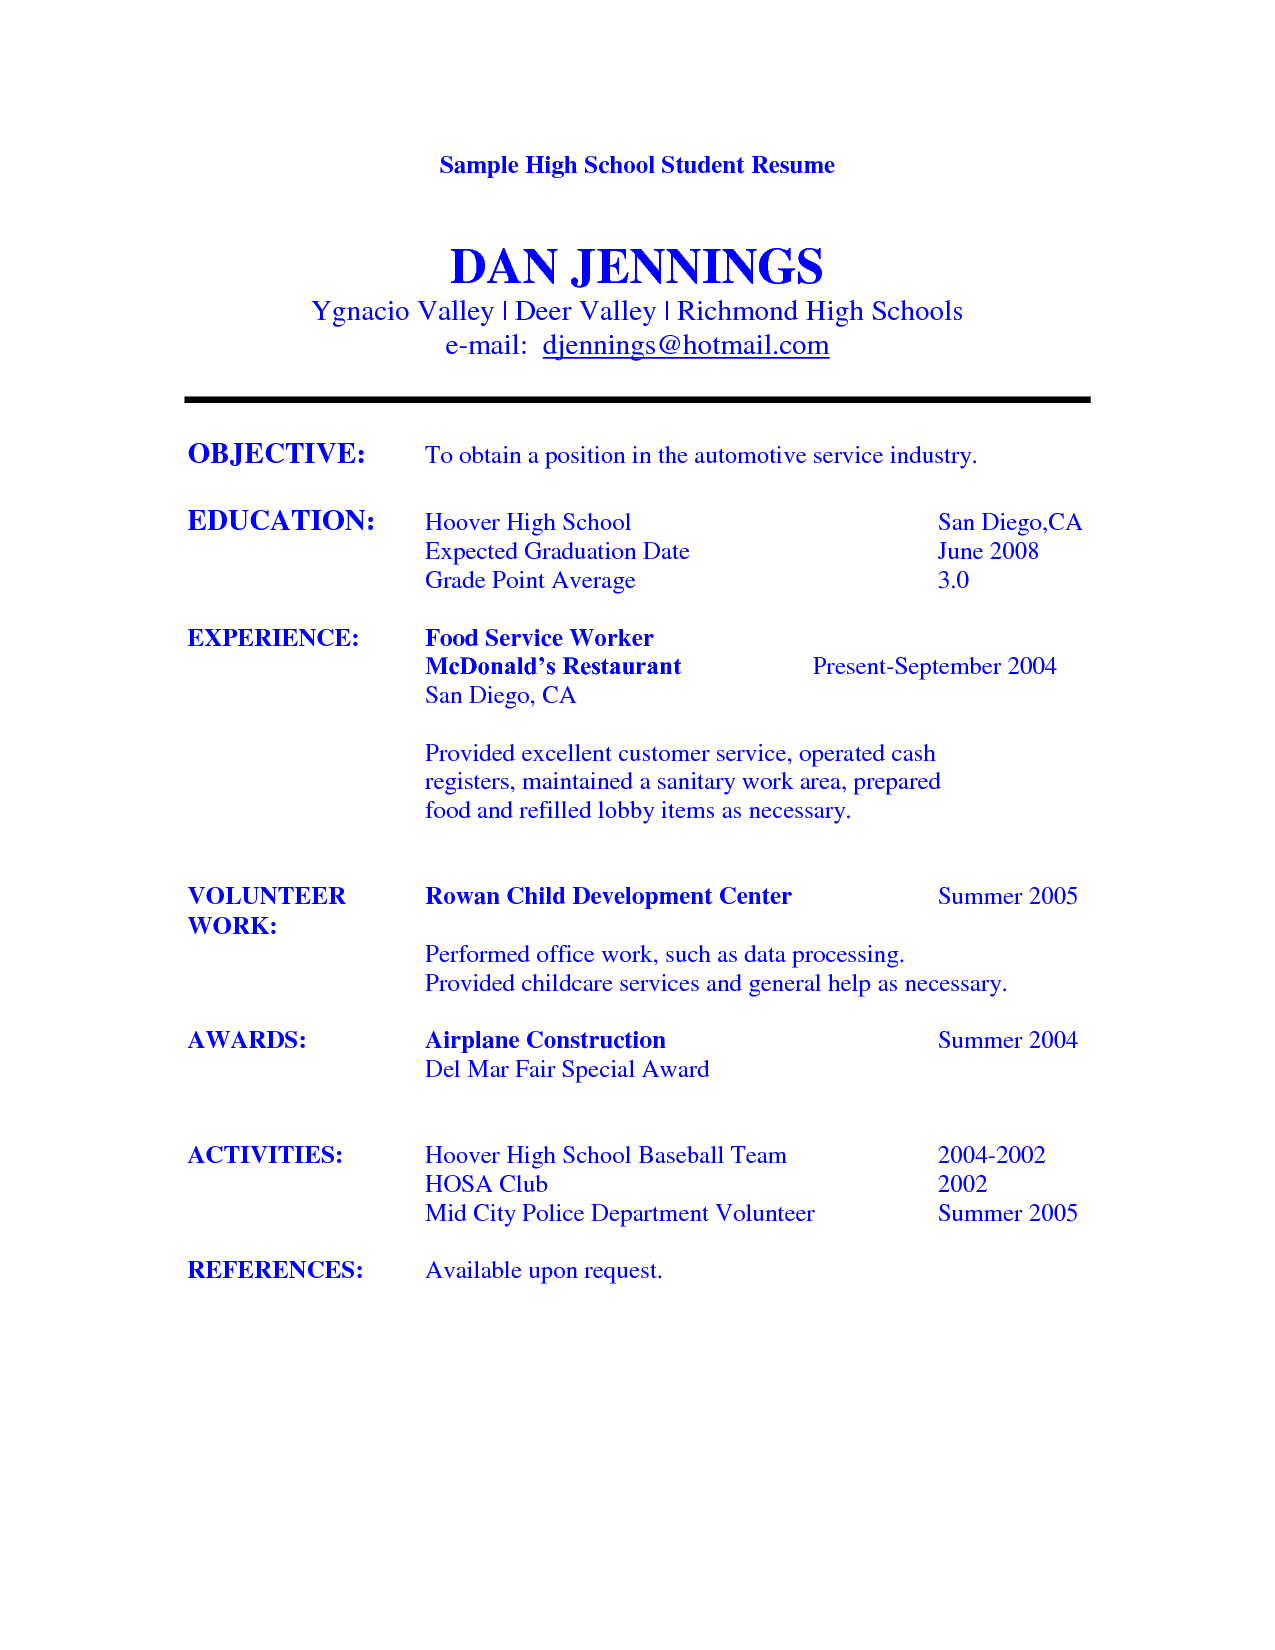 Resume For A Highschool Student Resume Example For High School Student Sample Resumes  Httpwww